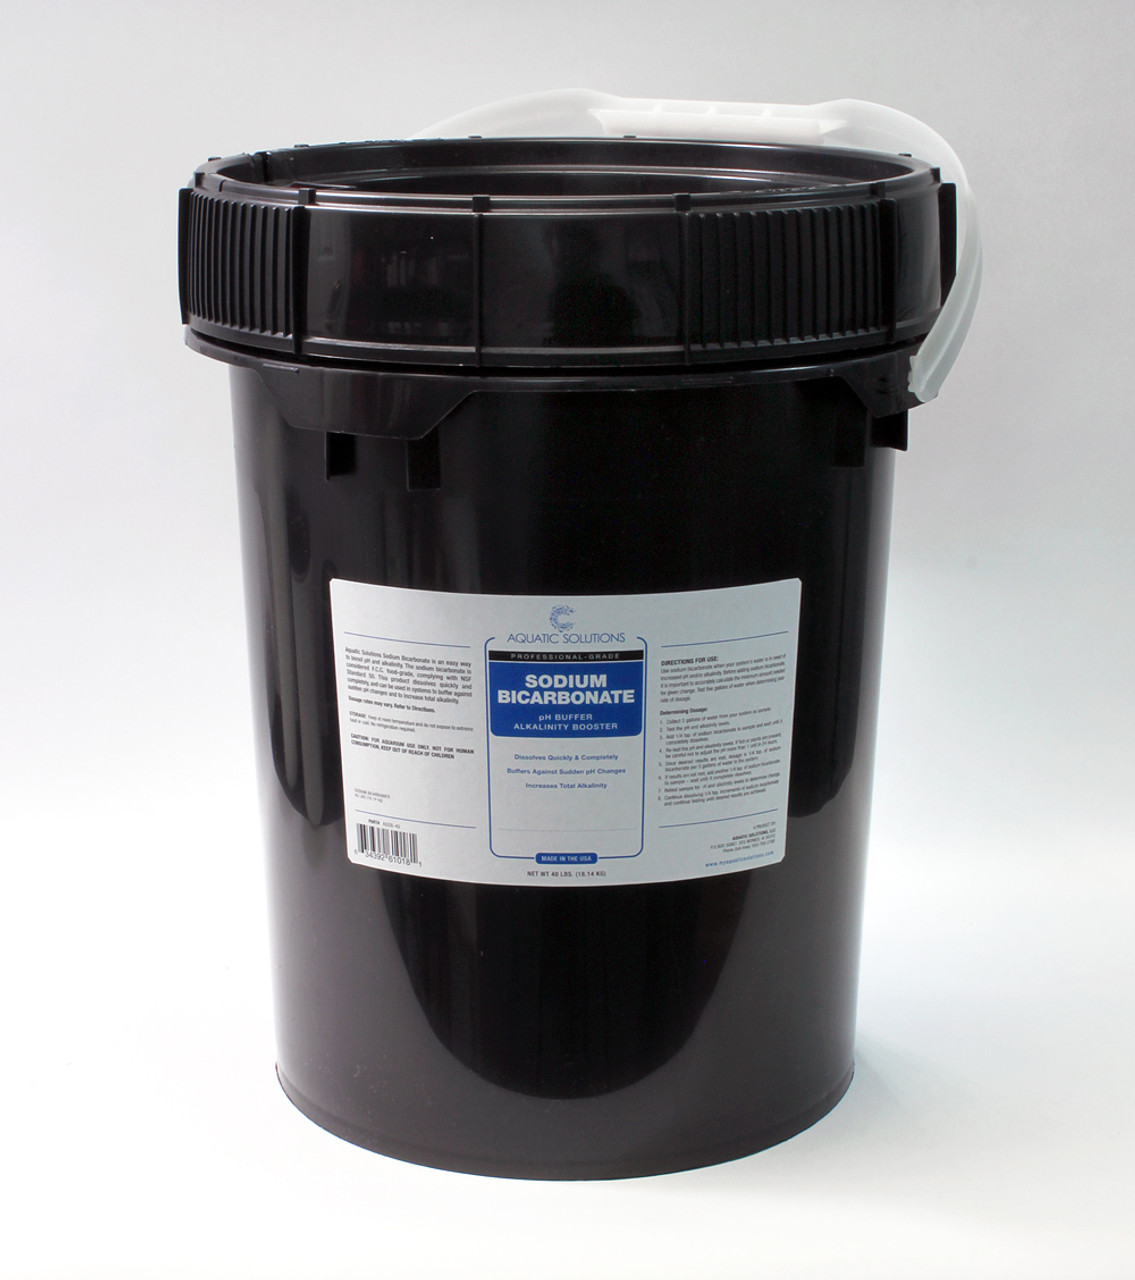 Aquatic Solutions, Sodium Bicarbonate 40 lb/ 5 gal Pail (ASSB-40)